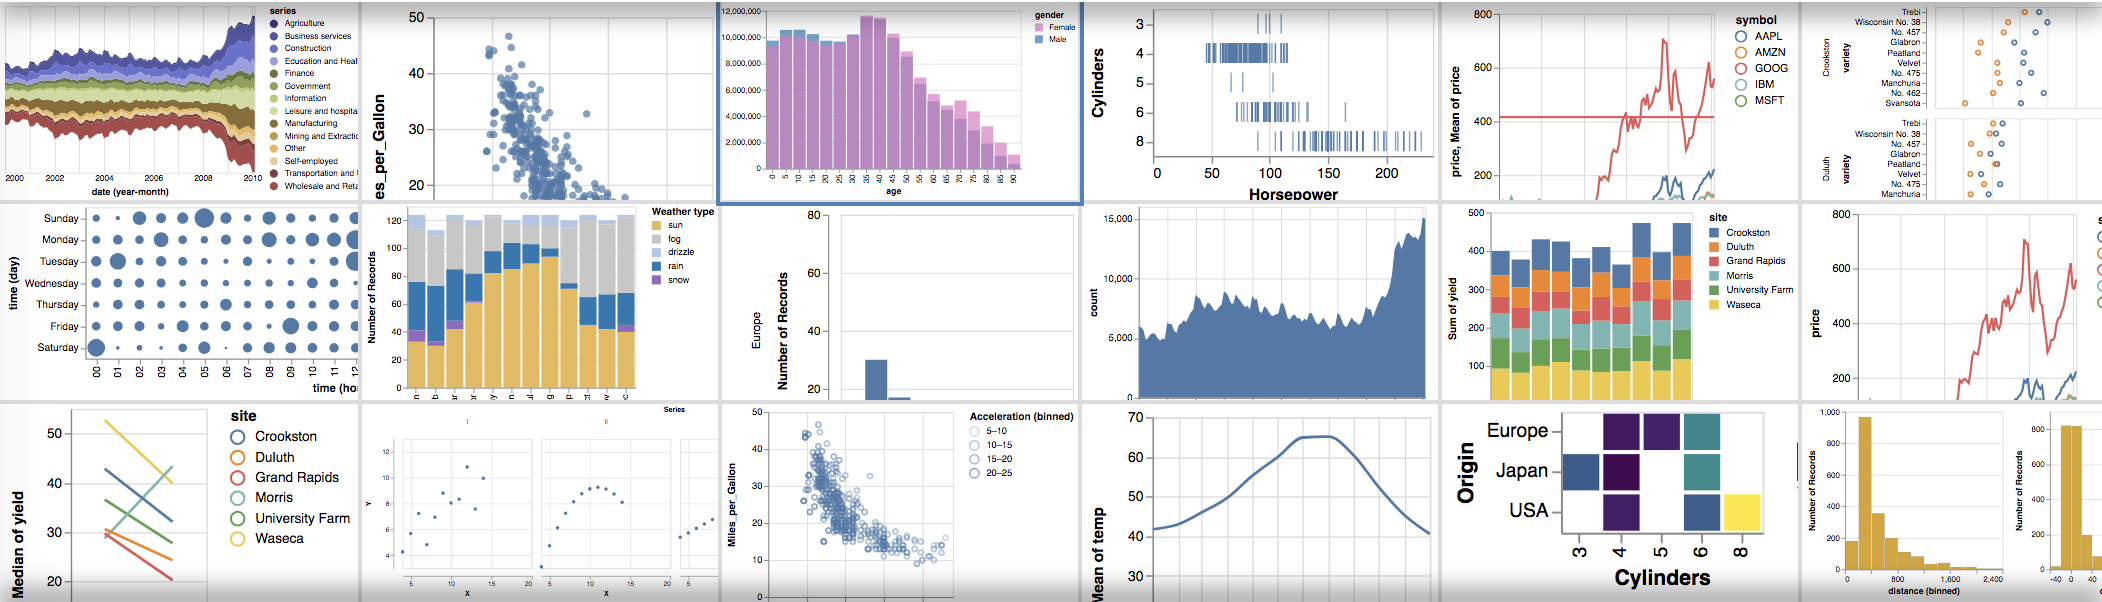 Interactive Data Visualization with Vega - Towards Data Science